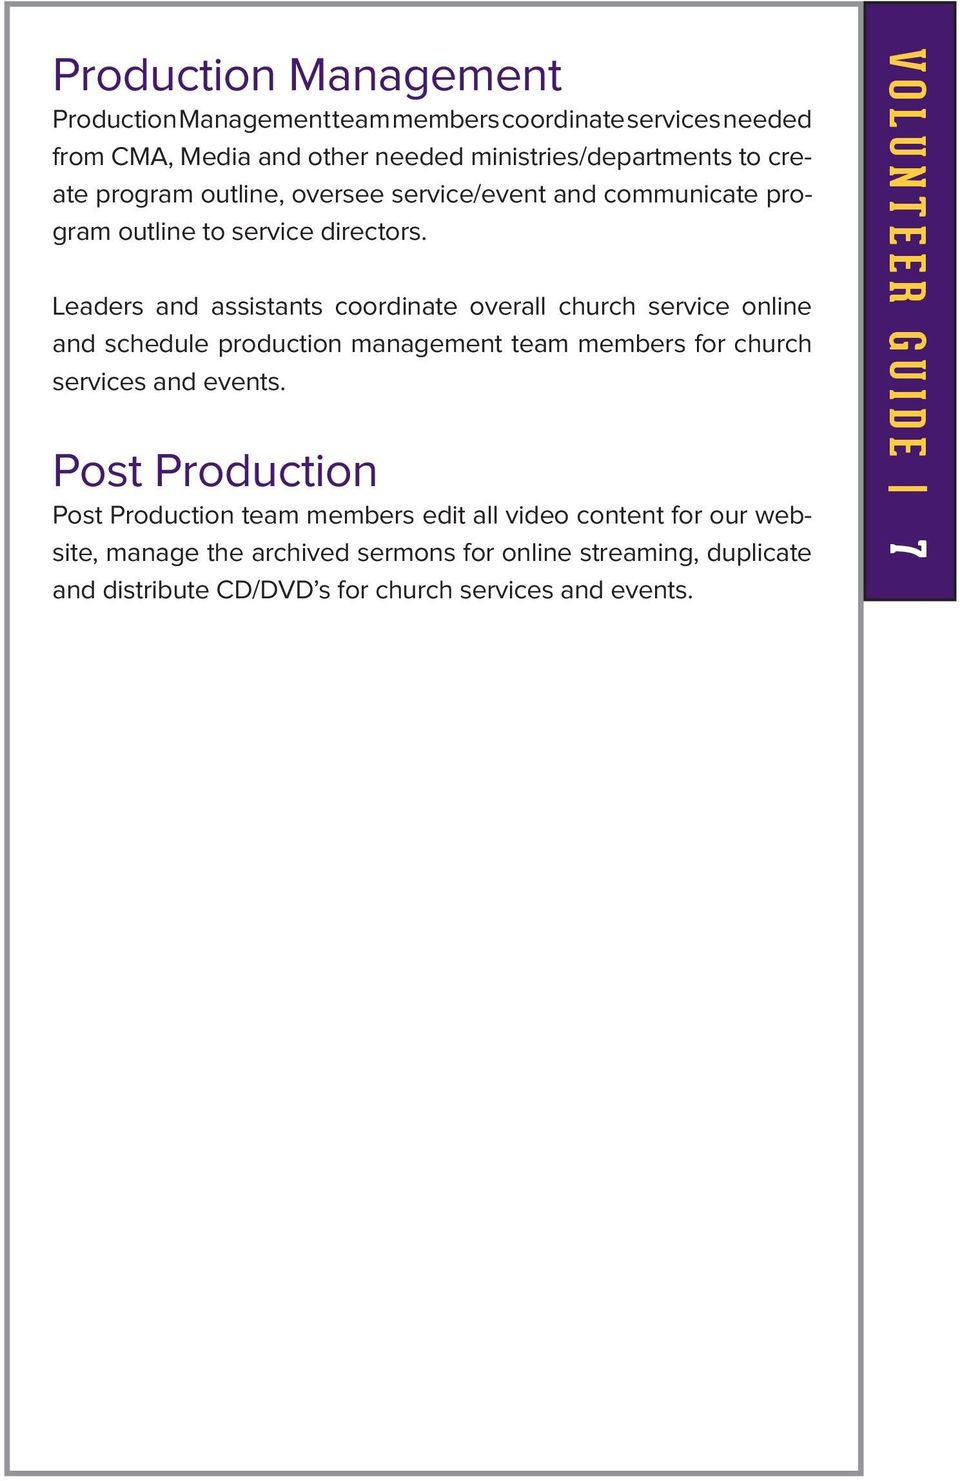 Leaders and assistants coordinate overall church service online and schedule production management team members for church services and events.